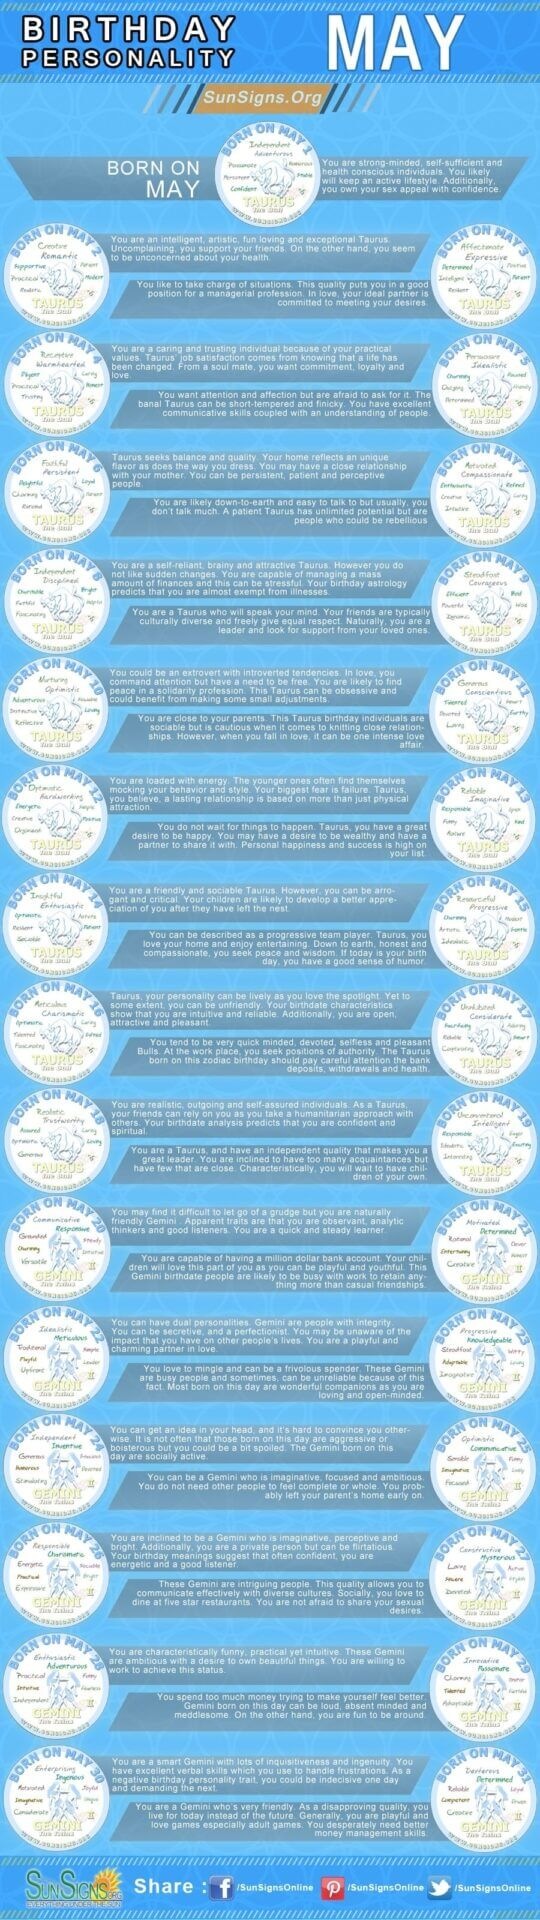 Infographics for people born in May. Zodiac sign Taurus and Gemini. birthday personality for each day of May